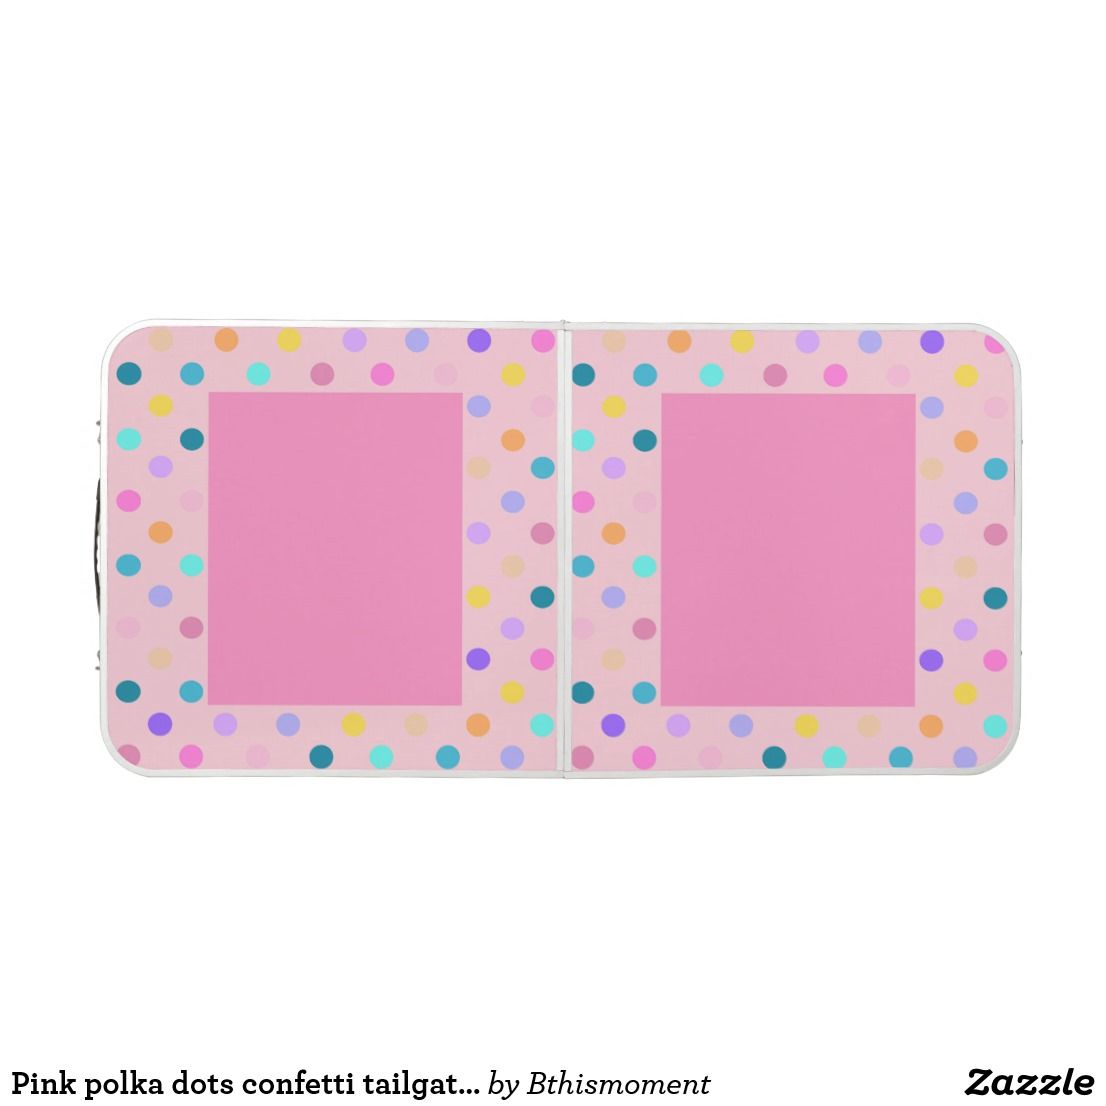 Pink polka dots confetti tailgate beer pong table